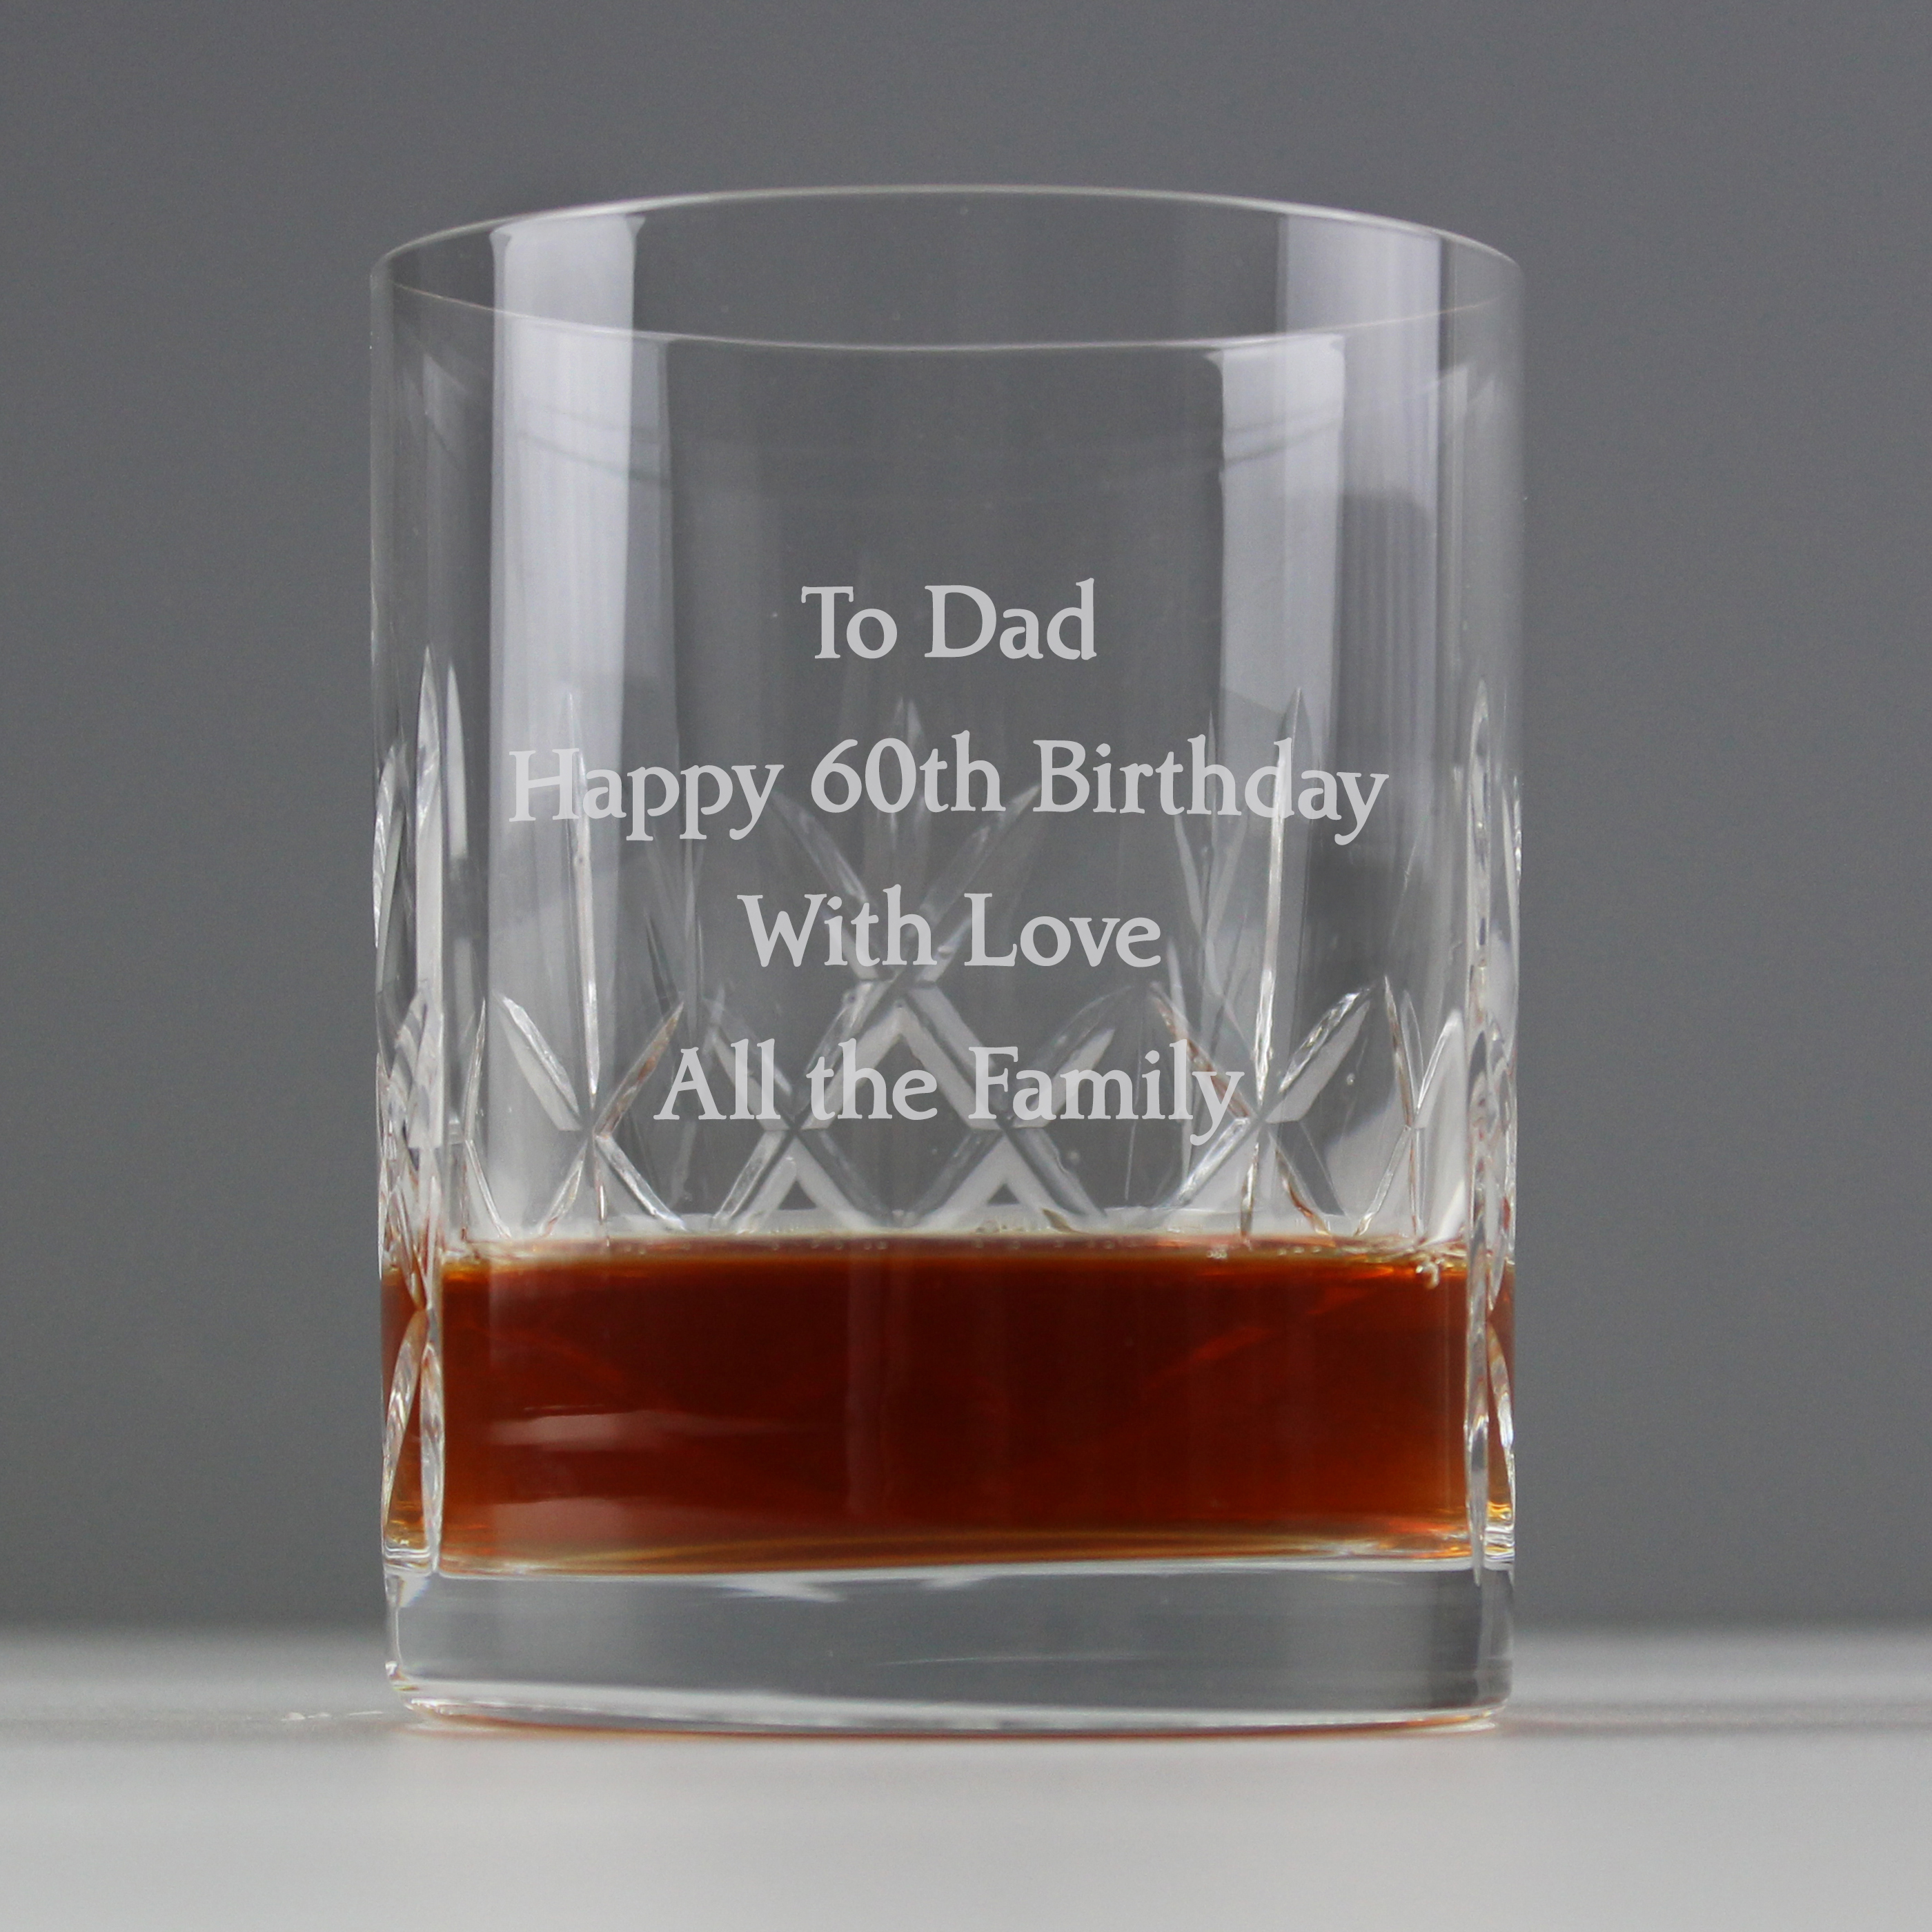 Engraved Crystal Whisky Tumbler